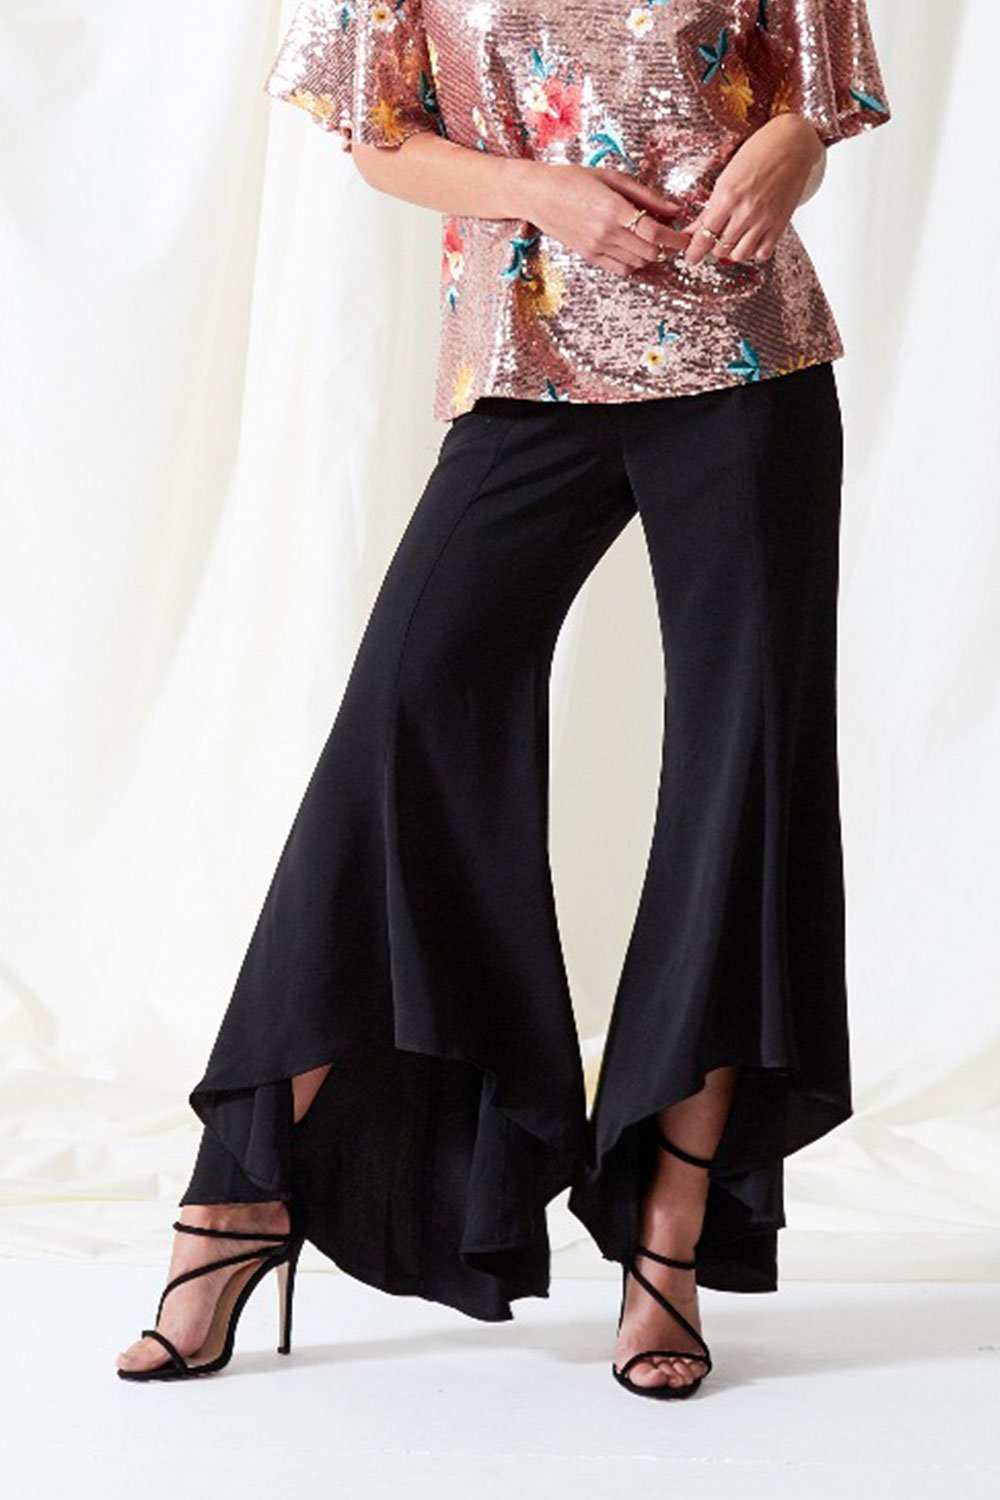 Shop Neon Rose Trousers Neon Rose Asymmetric Flared Trousers Second Thread